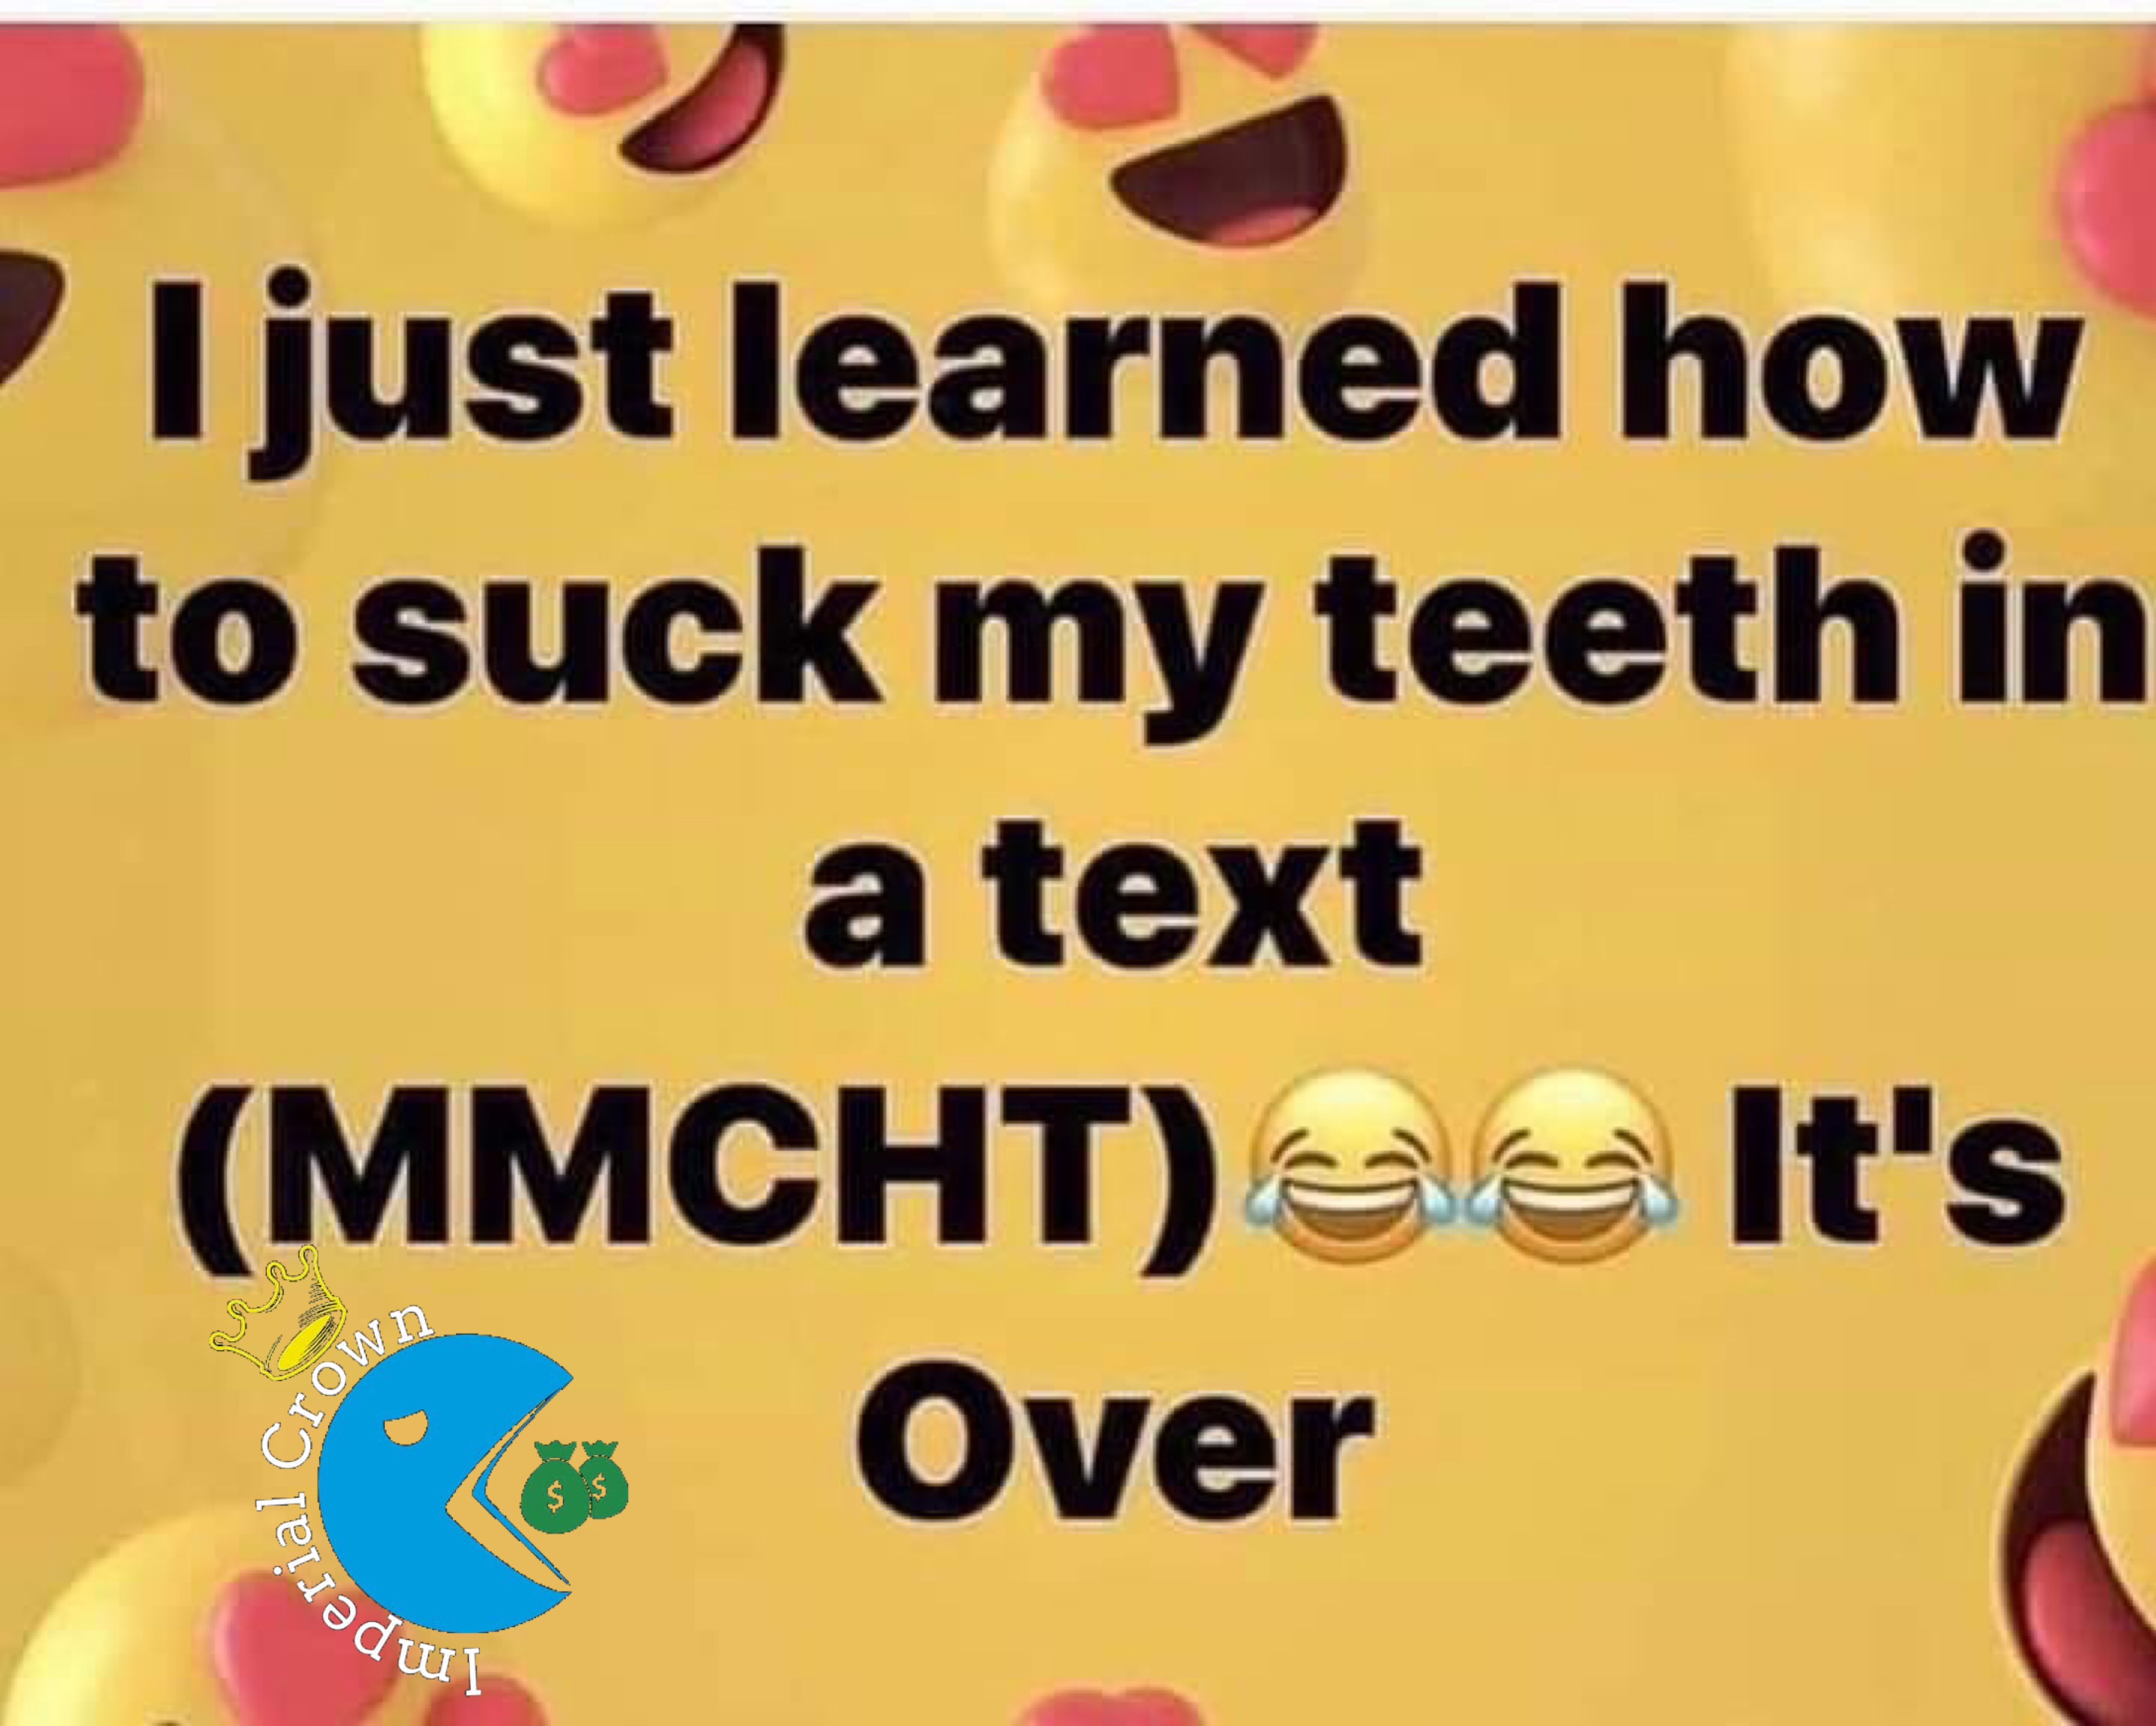 I just learned how to suck my teeth in a text (Mmcht) it's over